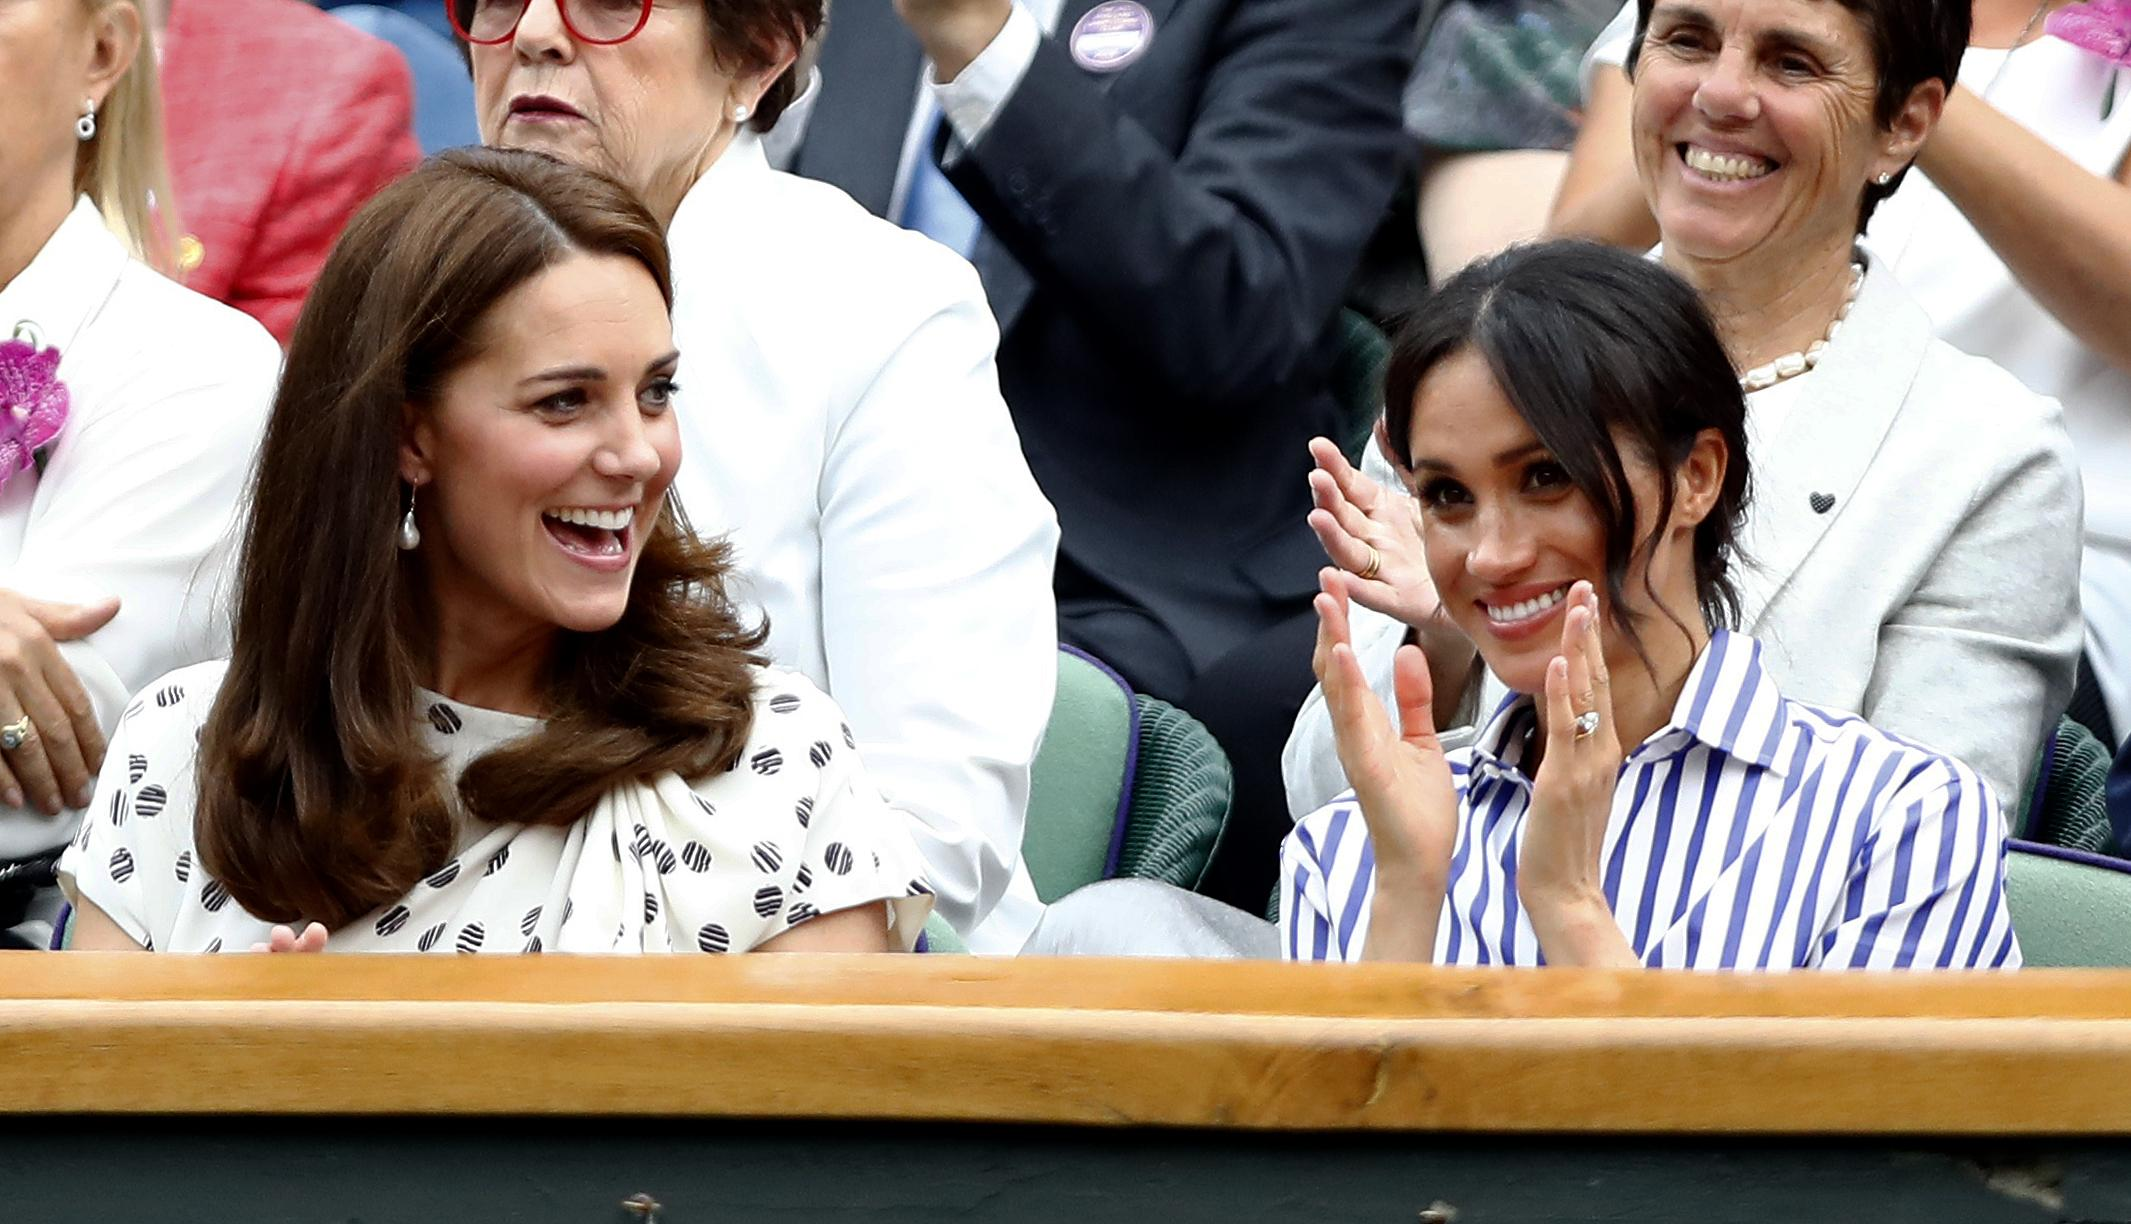 The Duchess of Cambridge and the Duchess of Sussex watched the epic between Novak Djokovic and Rafael Nadal